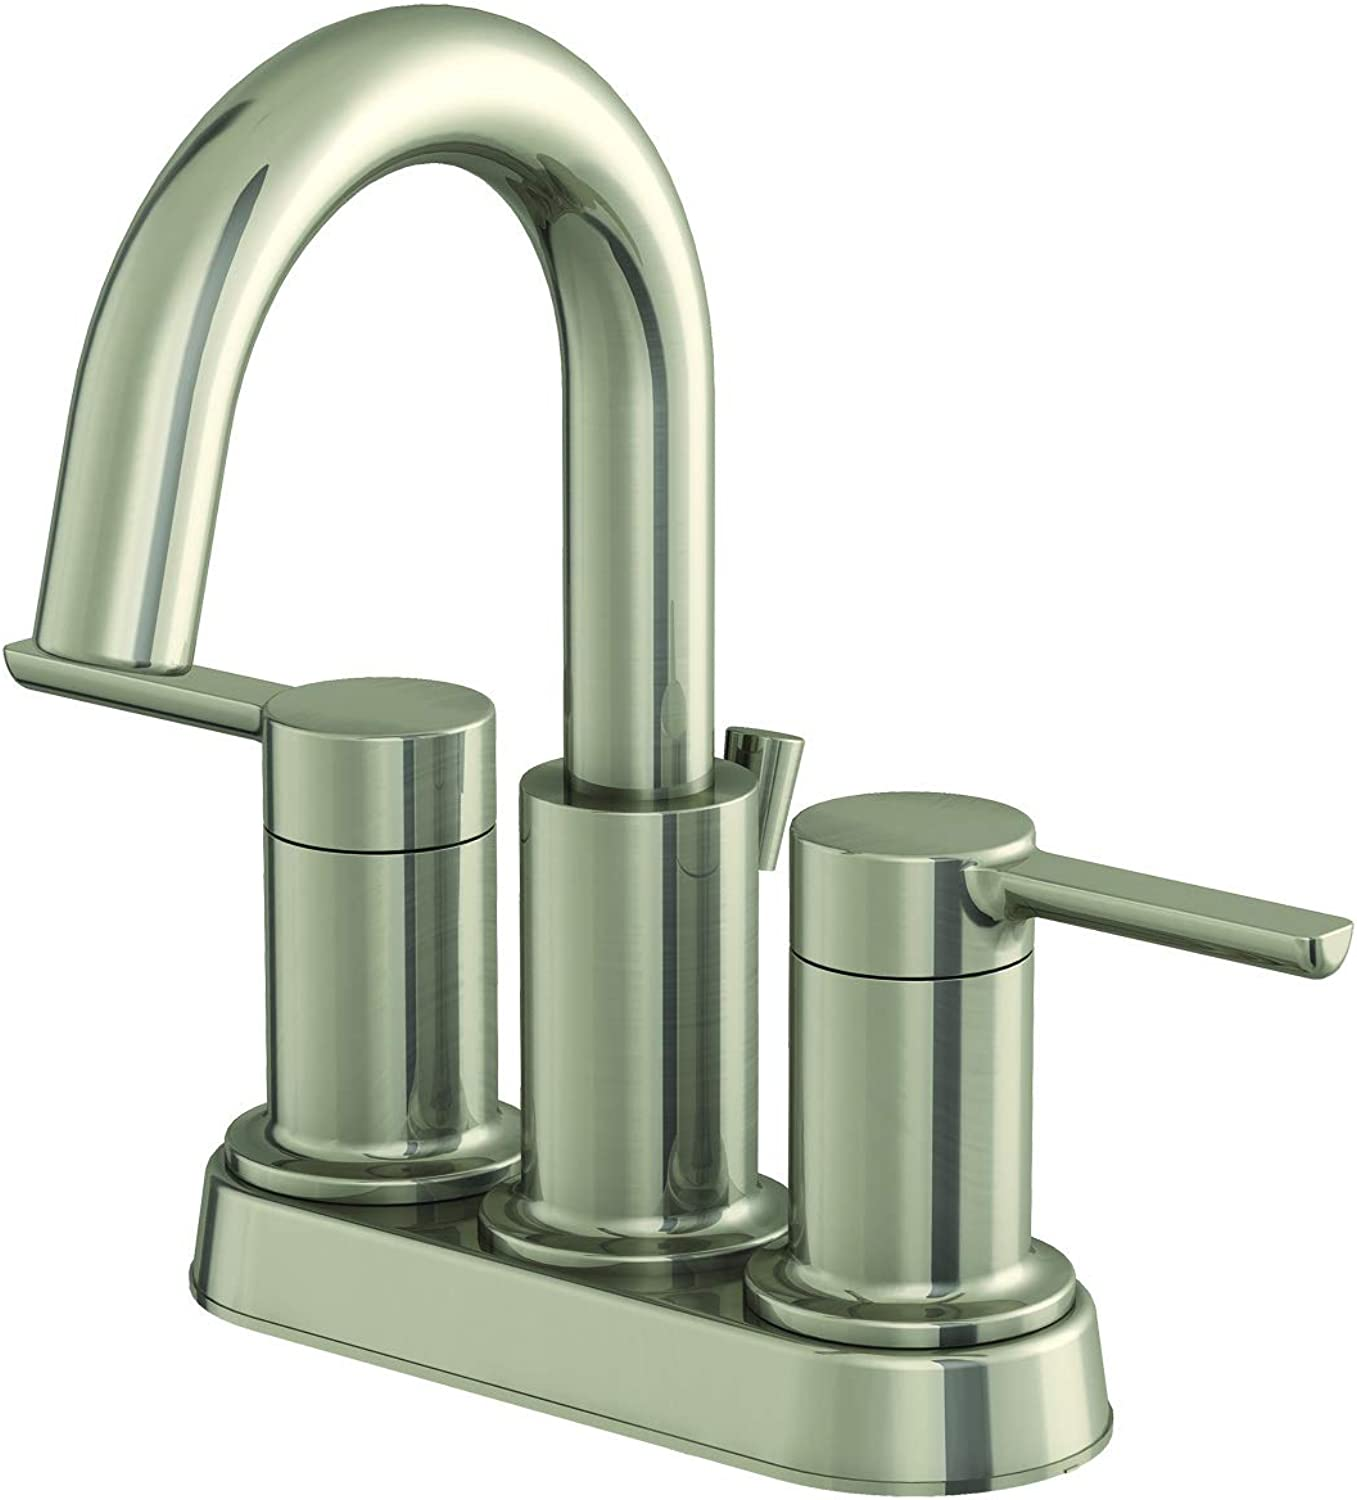 EZ-FLO 10681 Bathroom Faucet, Brushed Nickel